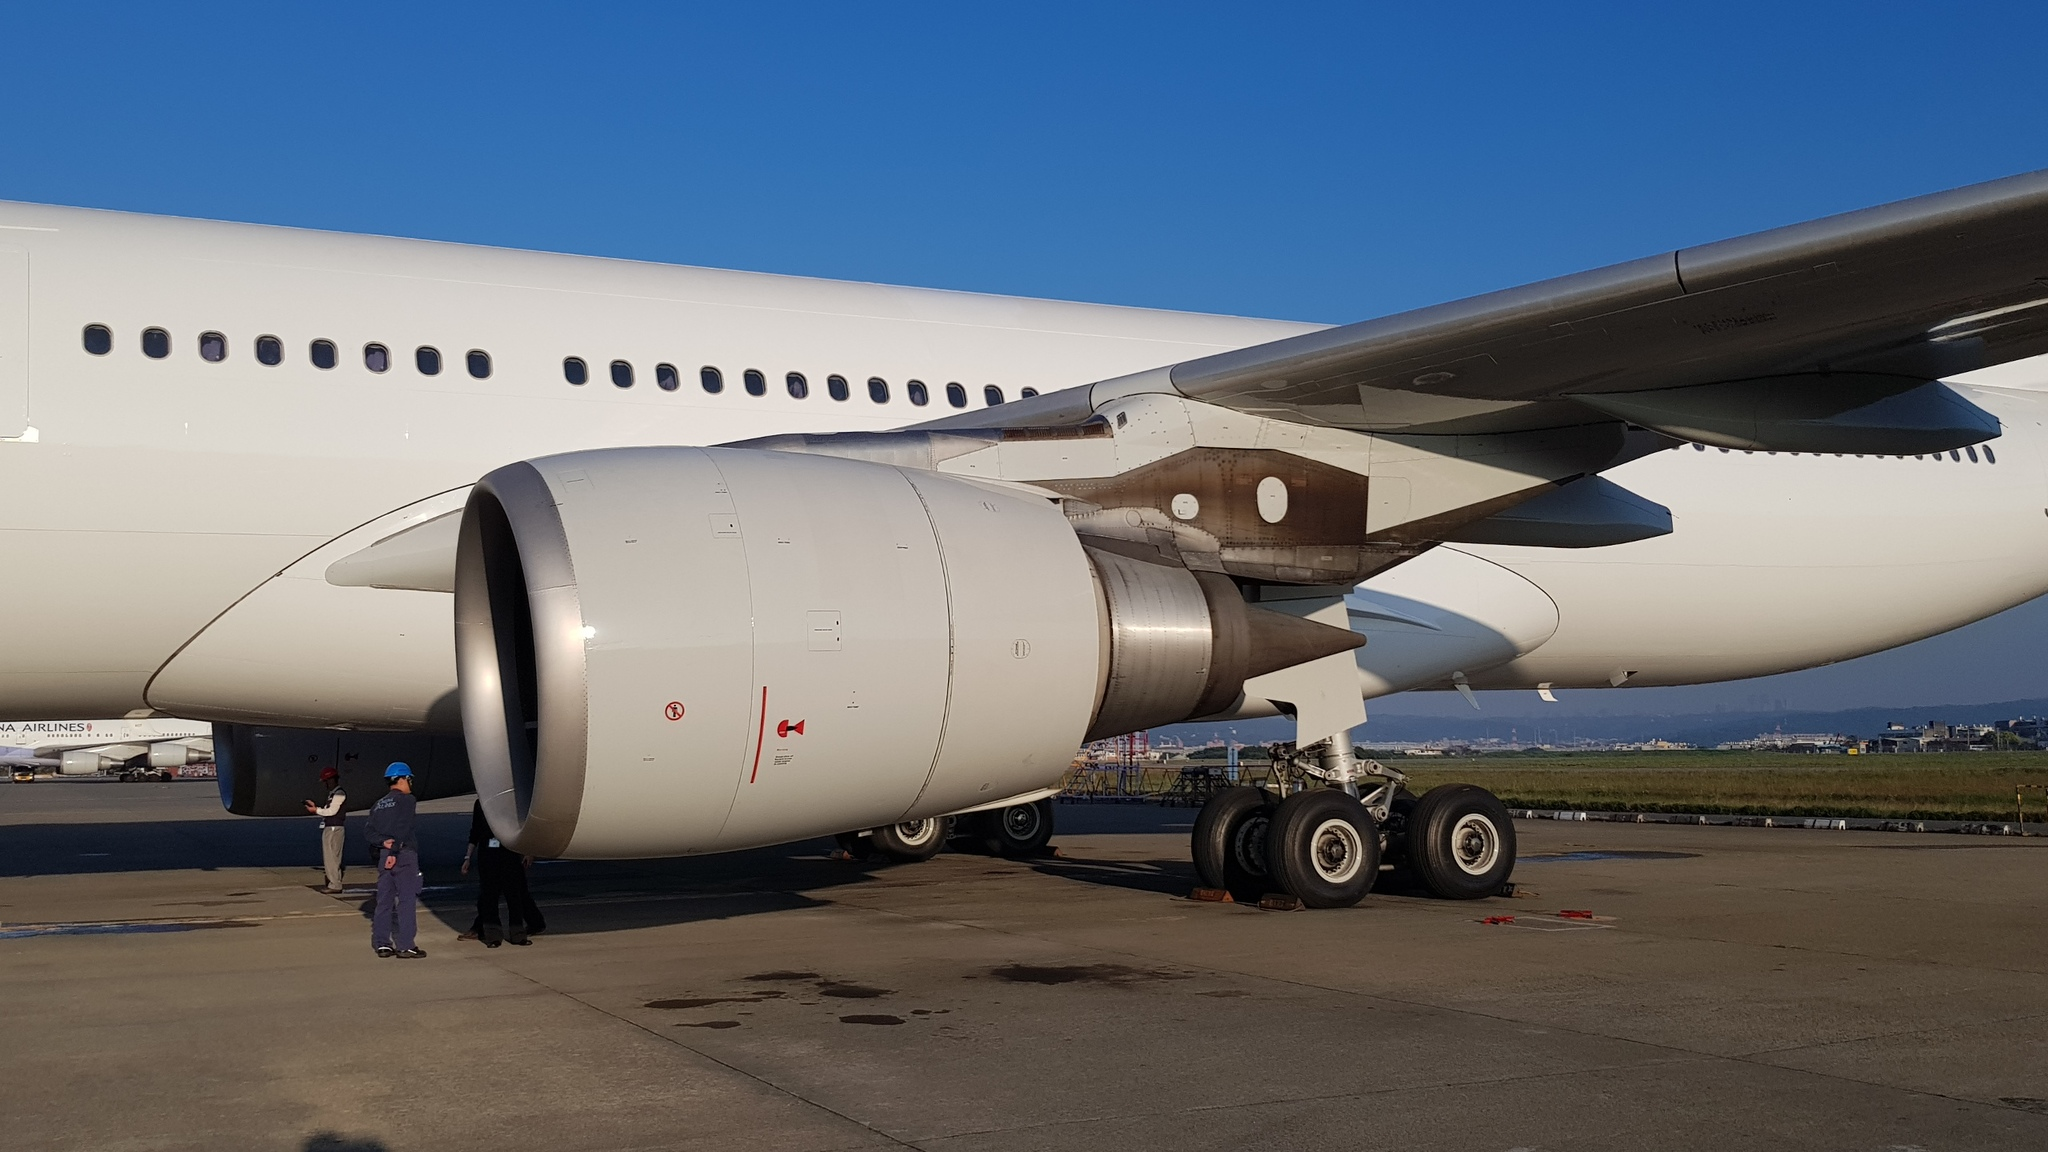 Airbus A330-300 for sale